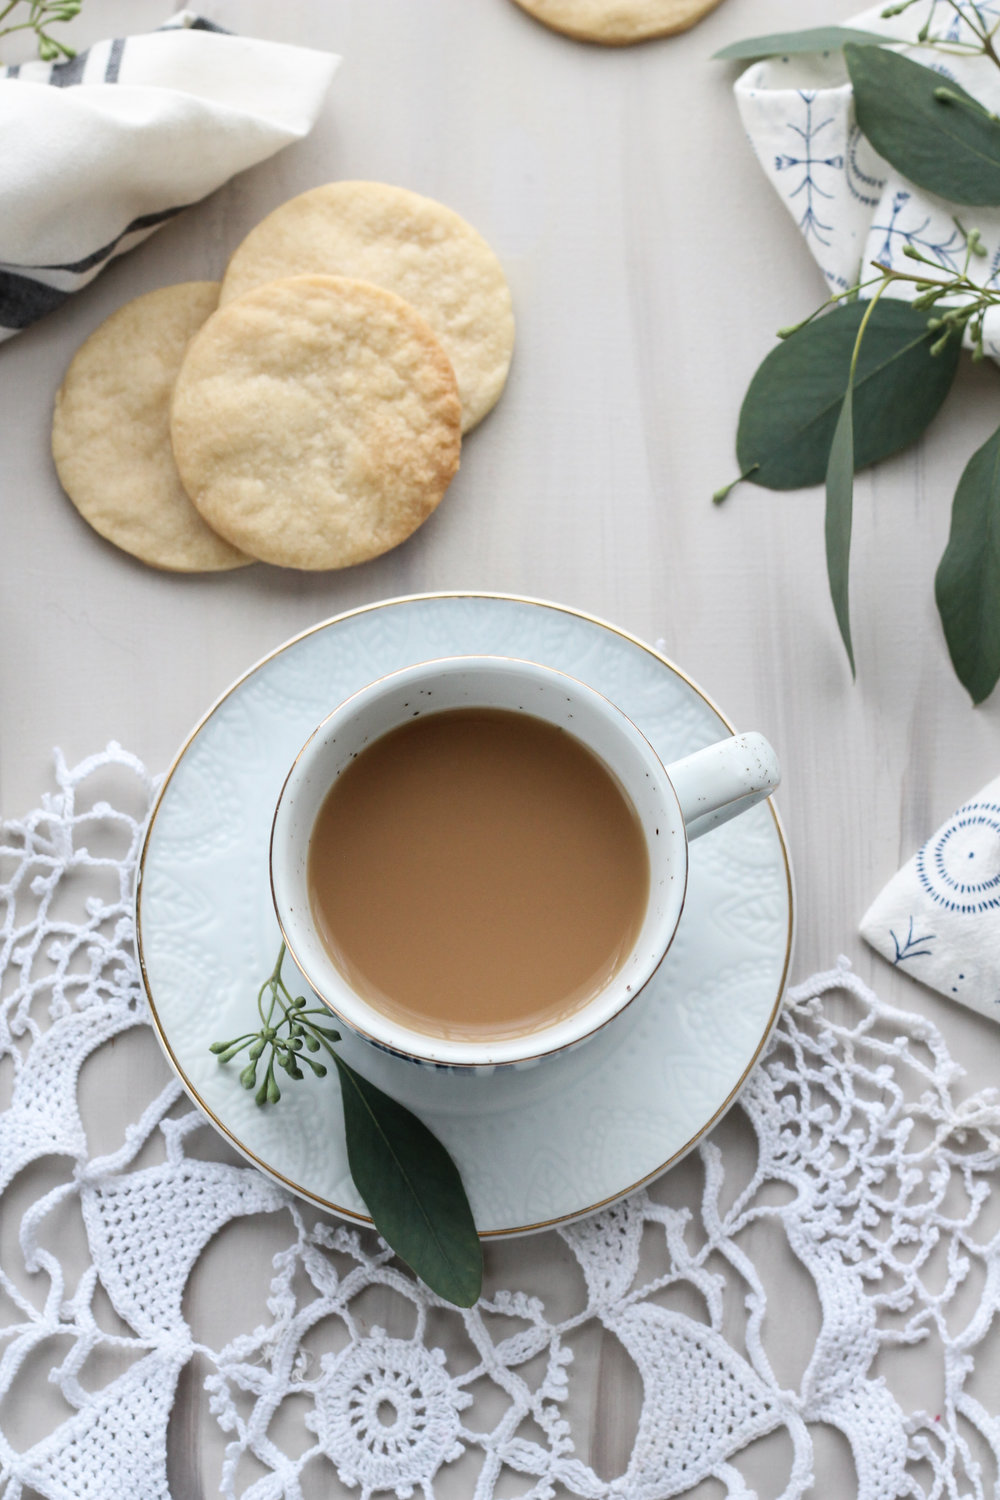 These delicate shortbread cookies are made with rich, salted French butter and pressed with doilies to create a soft, lace pattern.  [ www.pedanticfoodie.com ]